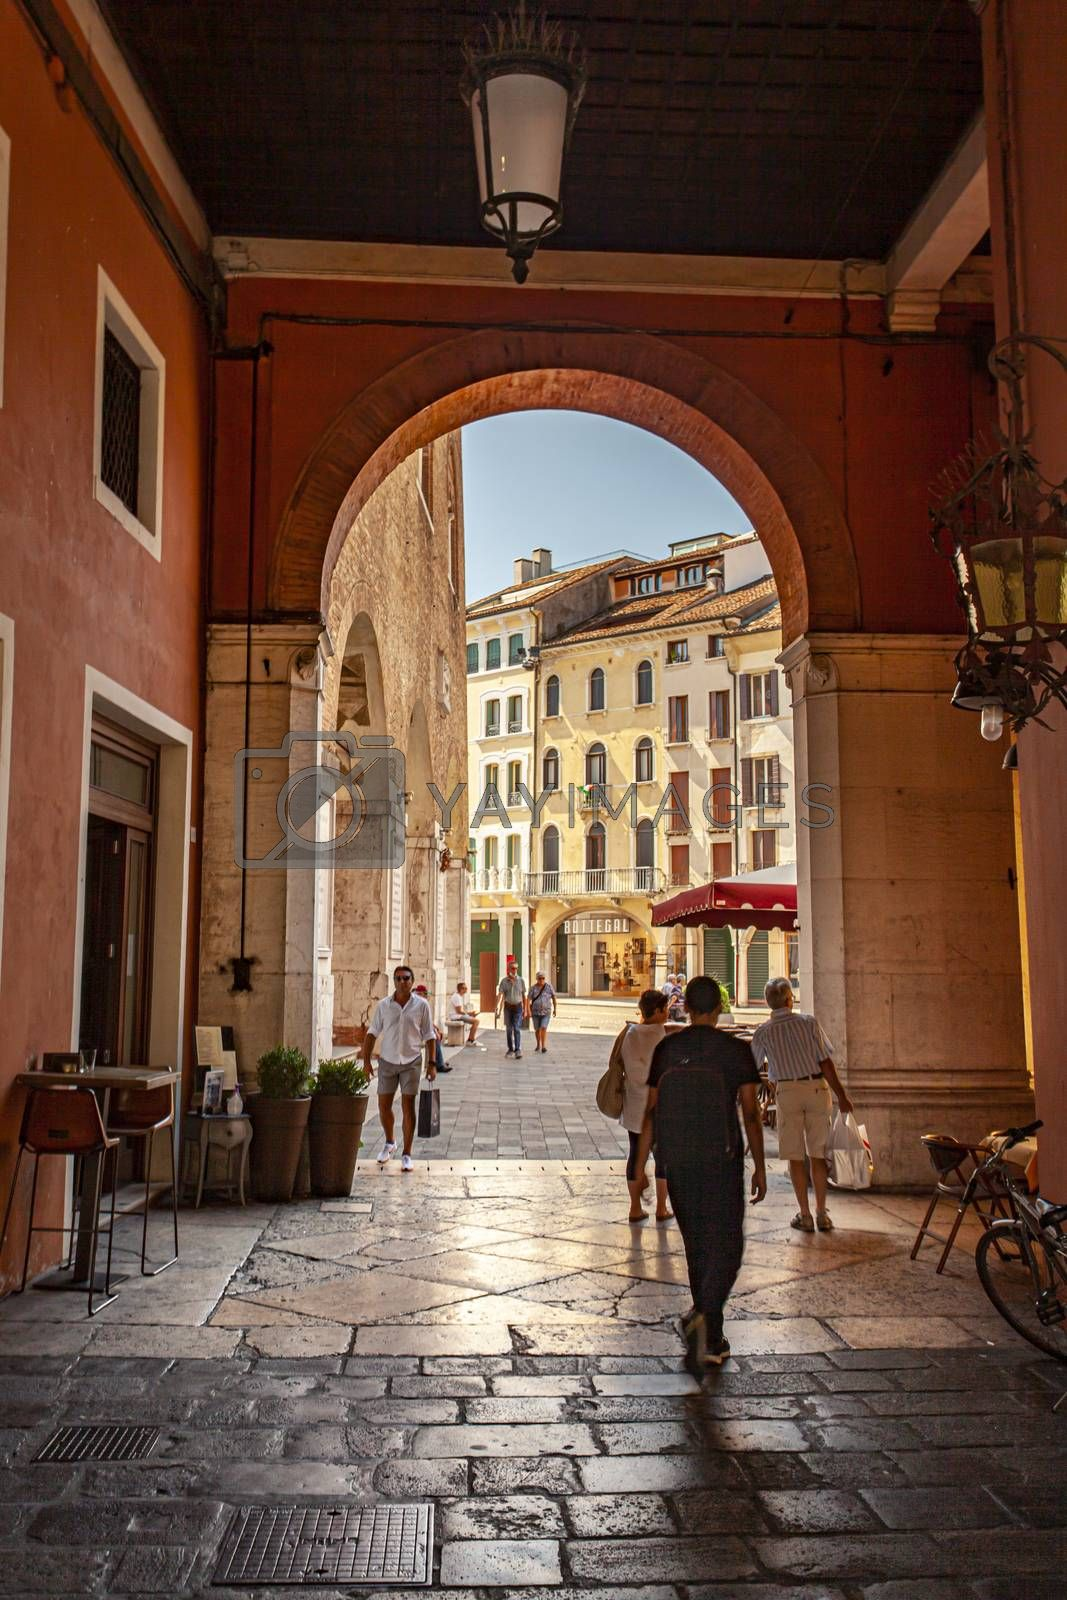 TREVISO, ITALY 13 AUGUST 2020: Arcades in Piazza dei signori in Treviso with people passing through